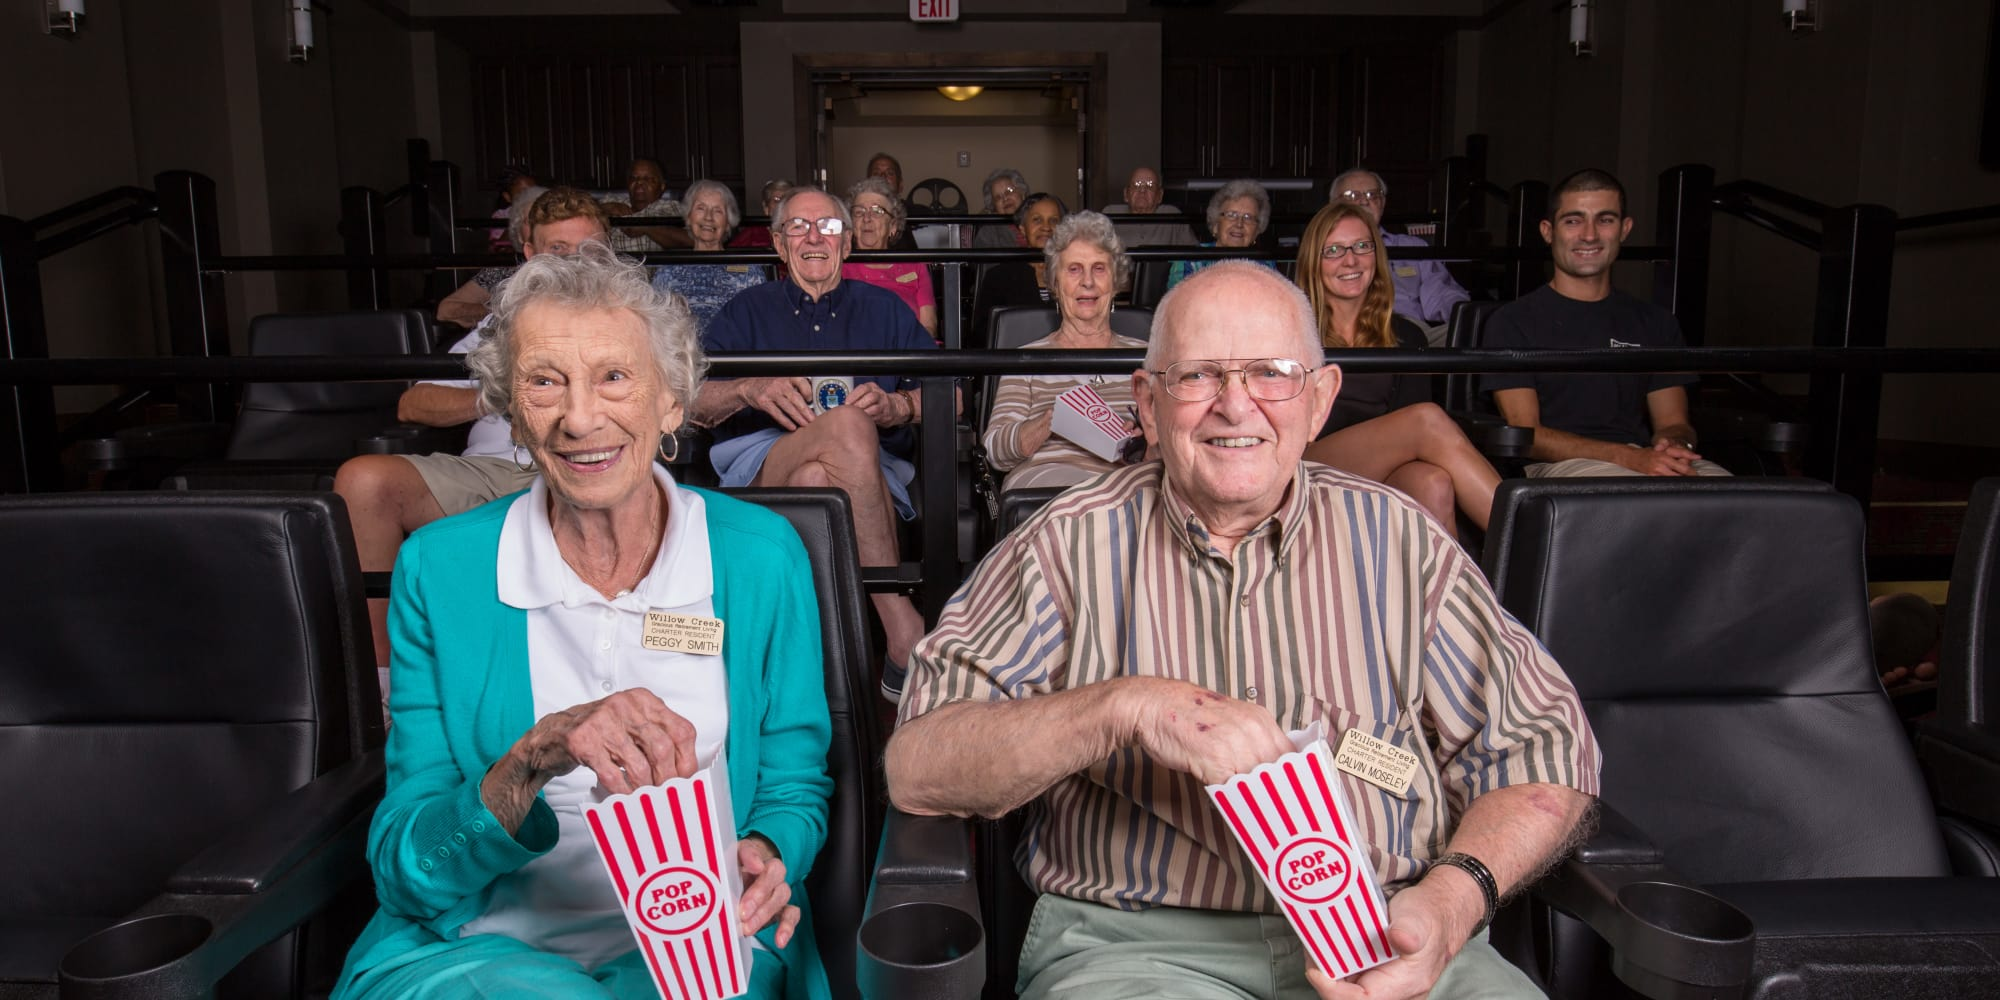 Residents eating popcorn and watching a movie at Willow Creek Gracious Retirement Living in Chesapeake, Virginia